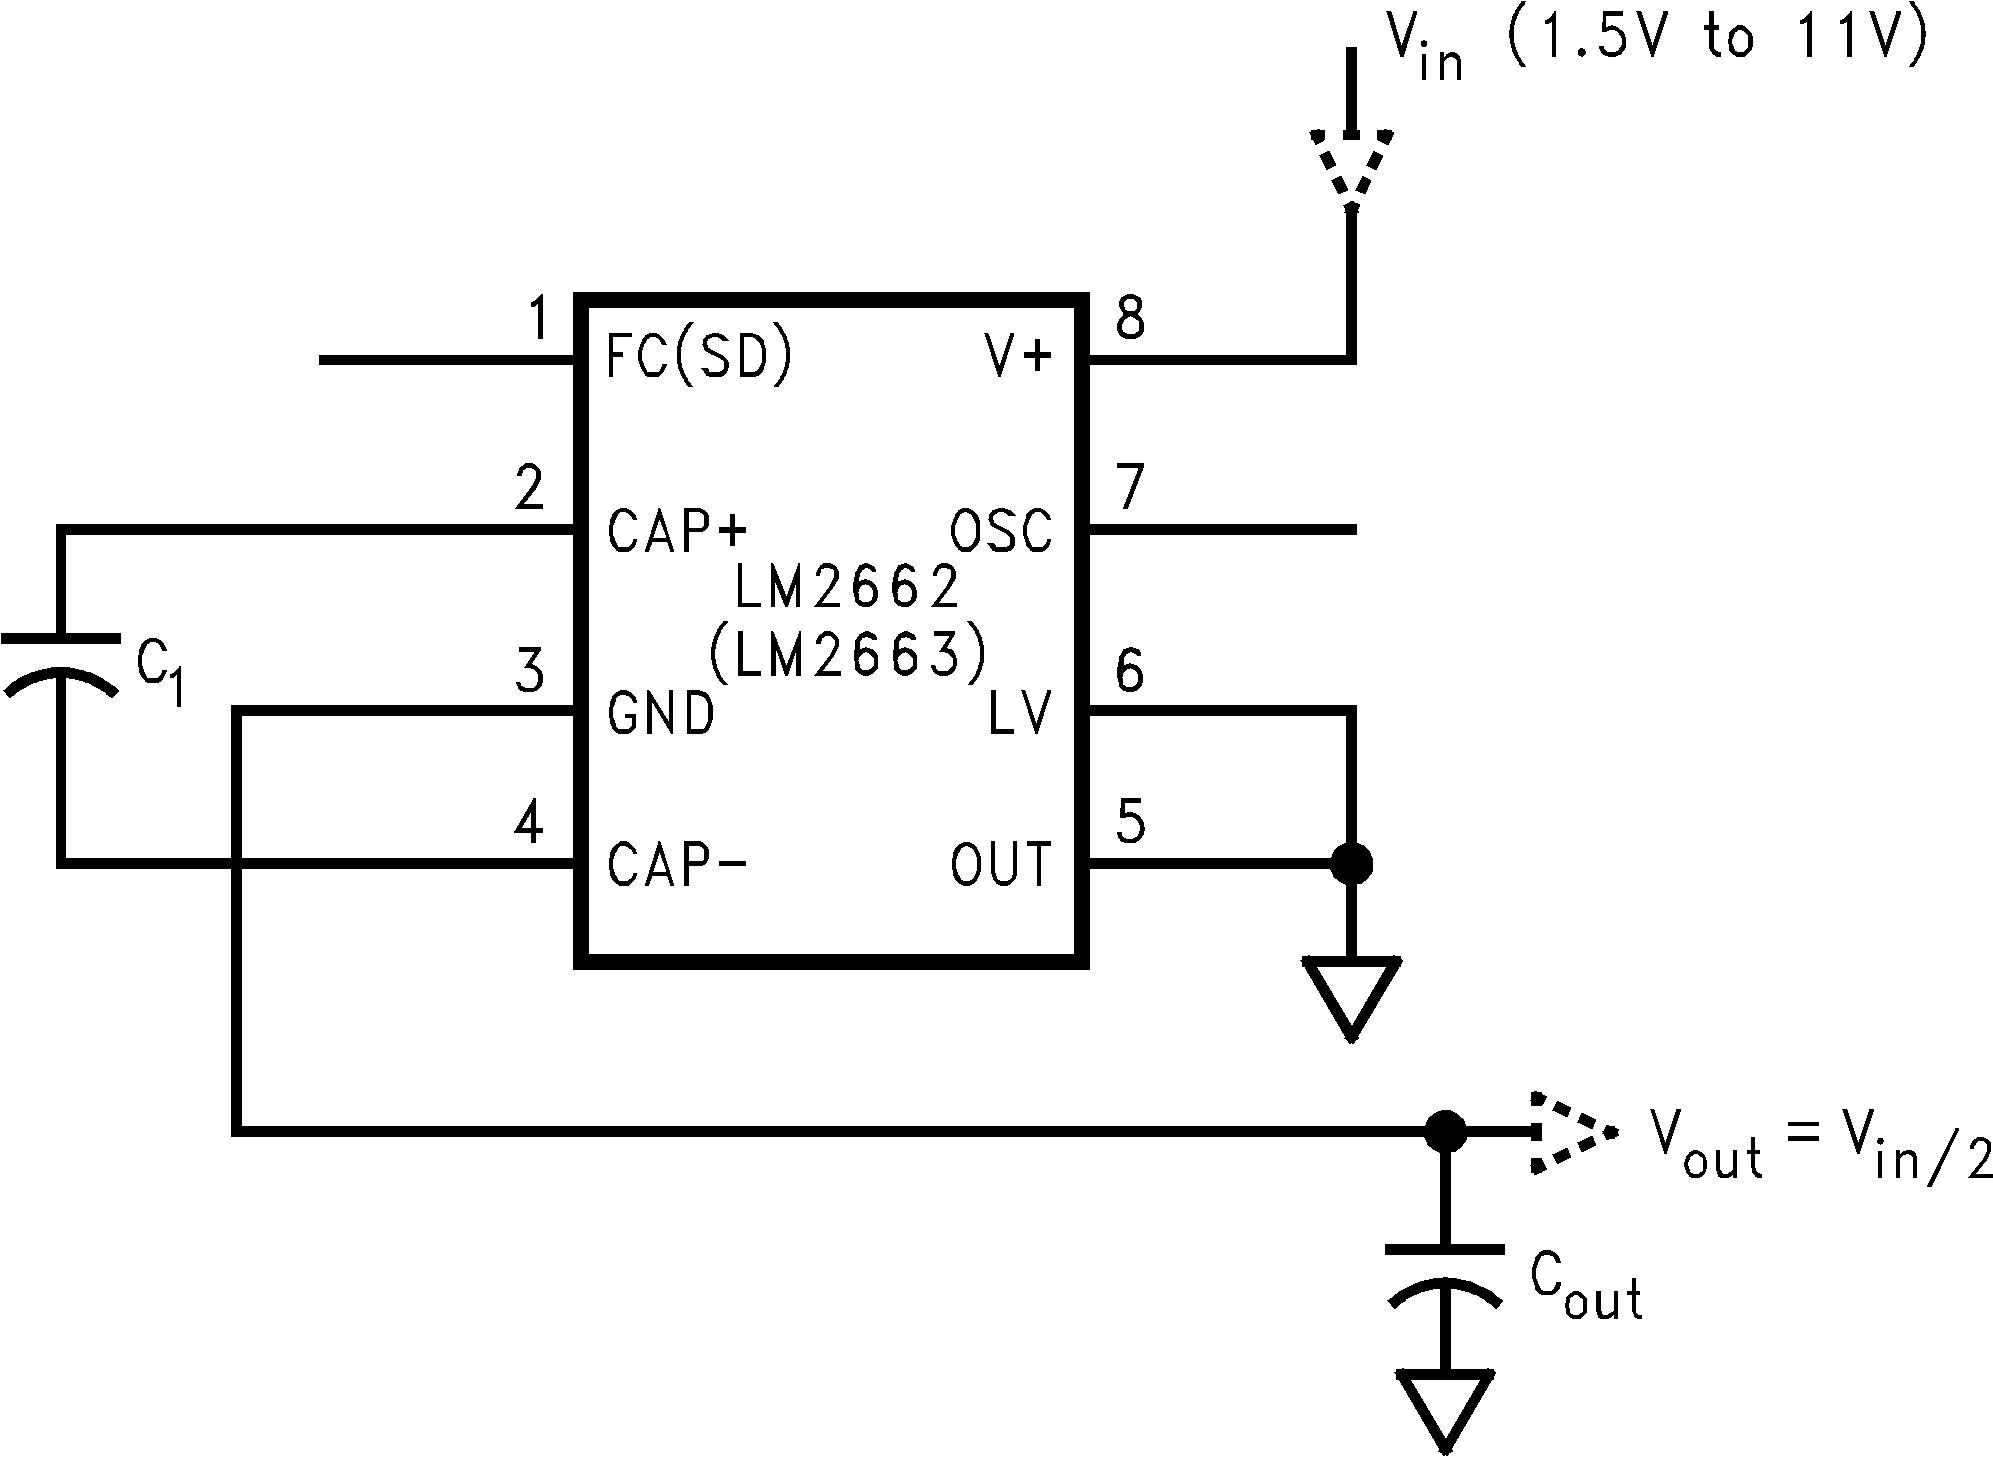 Lm2663 If The Voltage Goes Into Pin Three Then Circuit Becomes A Non Splitting Vin In Half